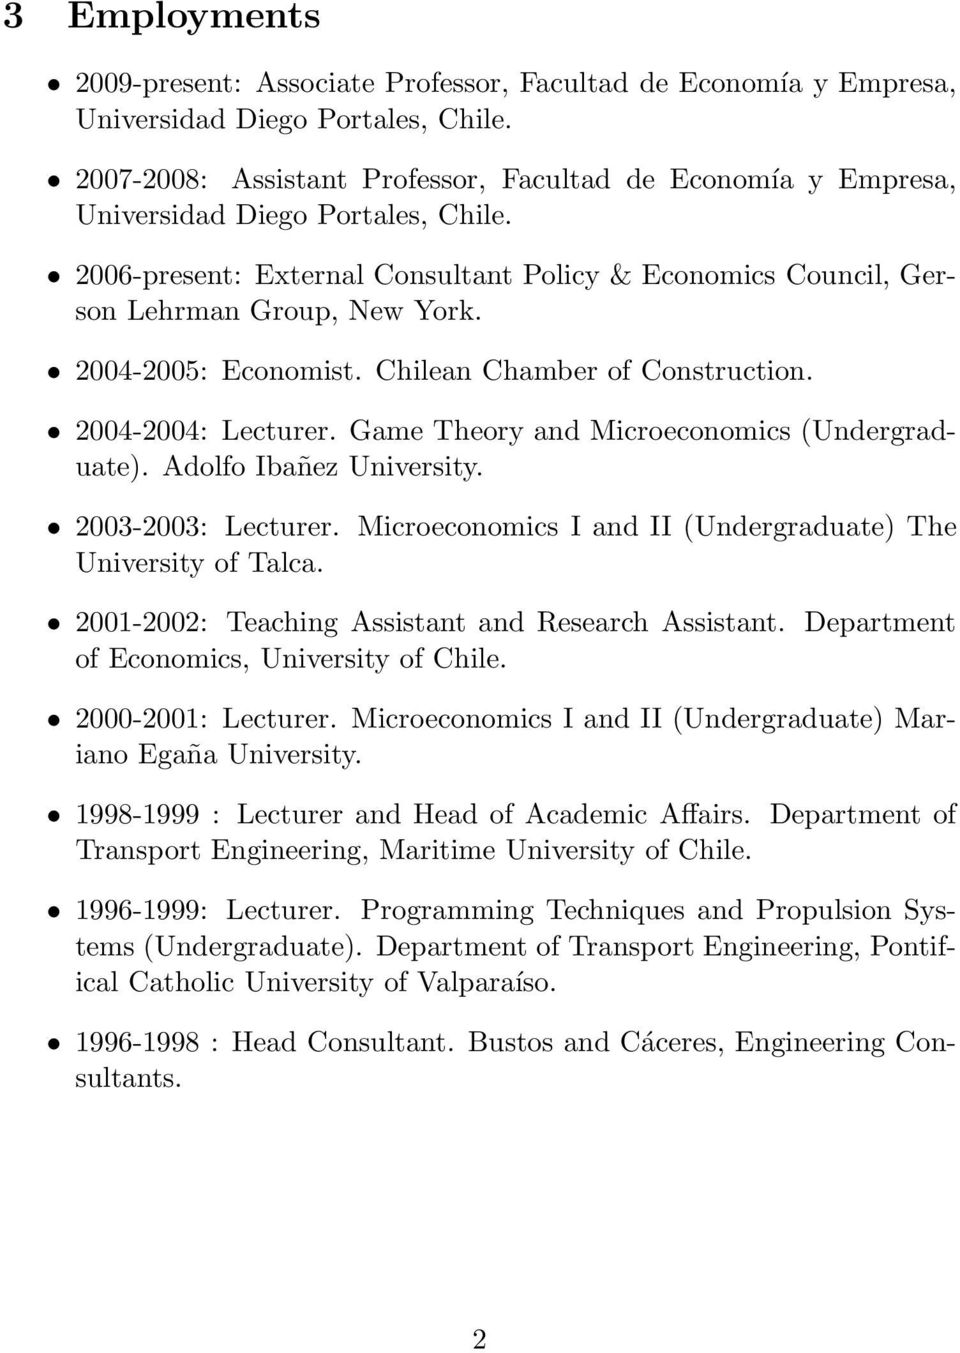 2004-2005: Economist. Chilean Chamber of Construction. 2004-2004: Lecturer. Game Theory and Microeconomics (Undergraduate). Adolfo Ibañez University. 2003-2003: Lecturer.